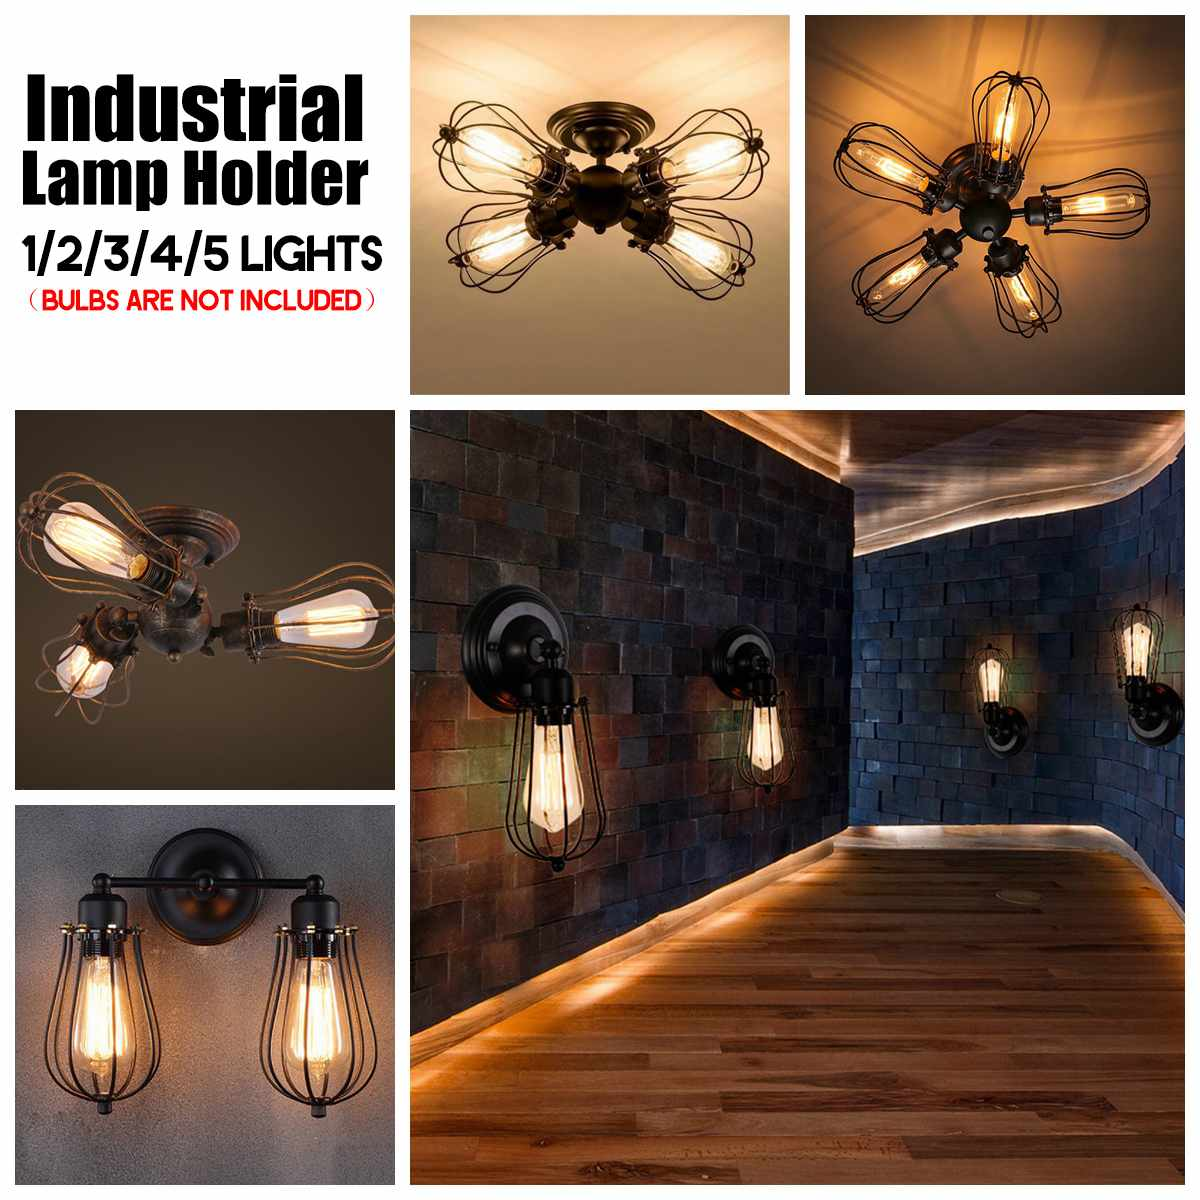 Industrial Pendant Light Industrial Edison 1/3 Head Lights Retro Barn Metal Flush Mount Ceiling Art Spide